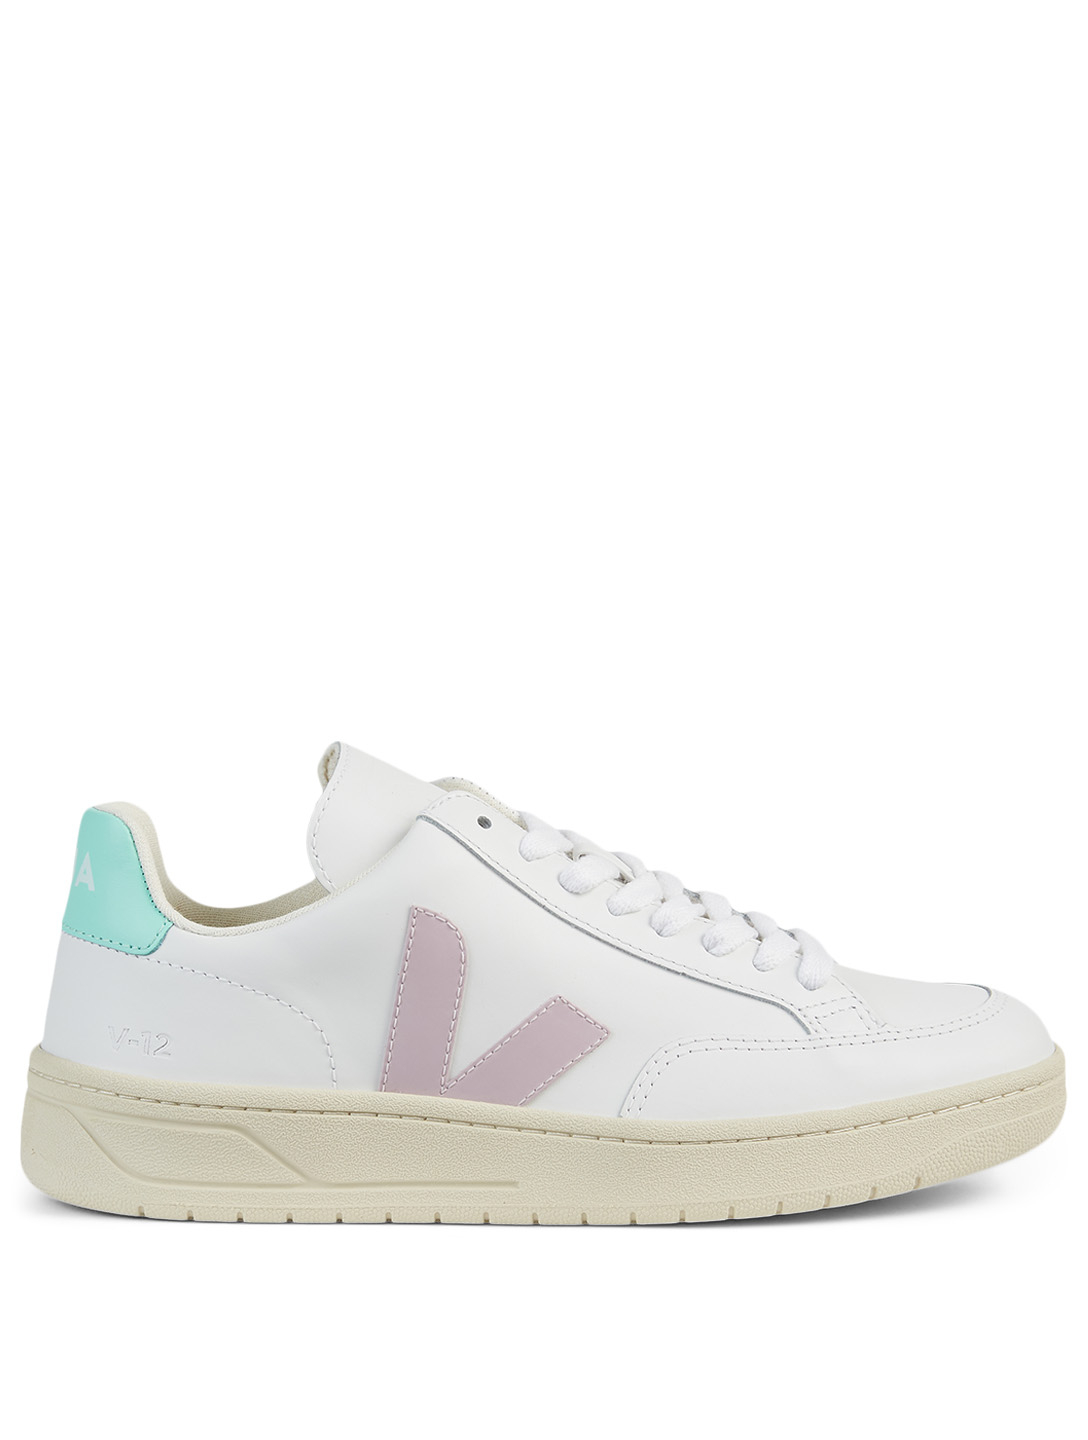 VEJA V-12 Leather Sneakers Women's Purple